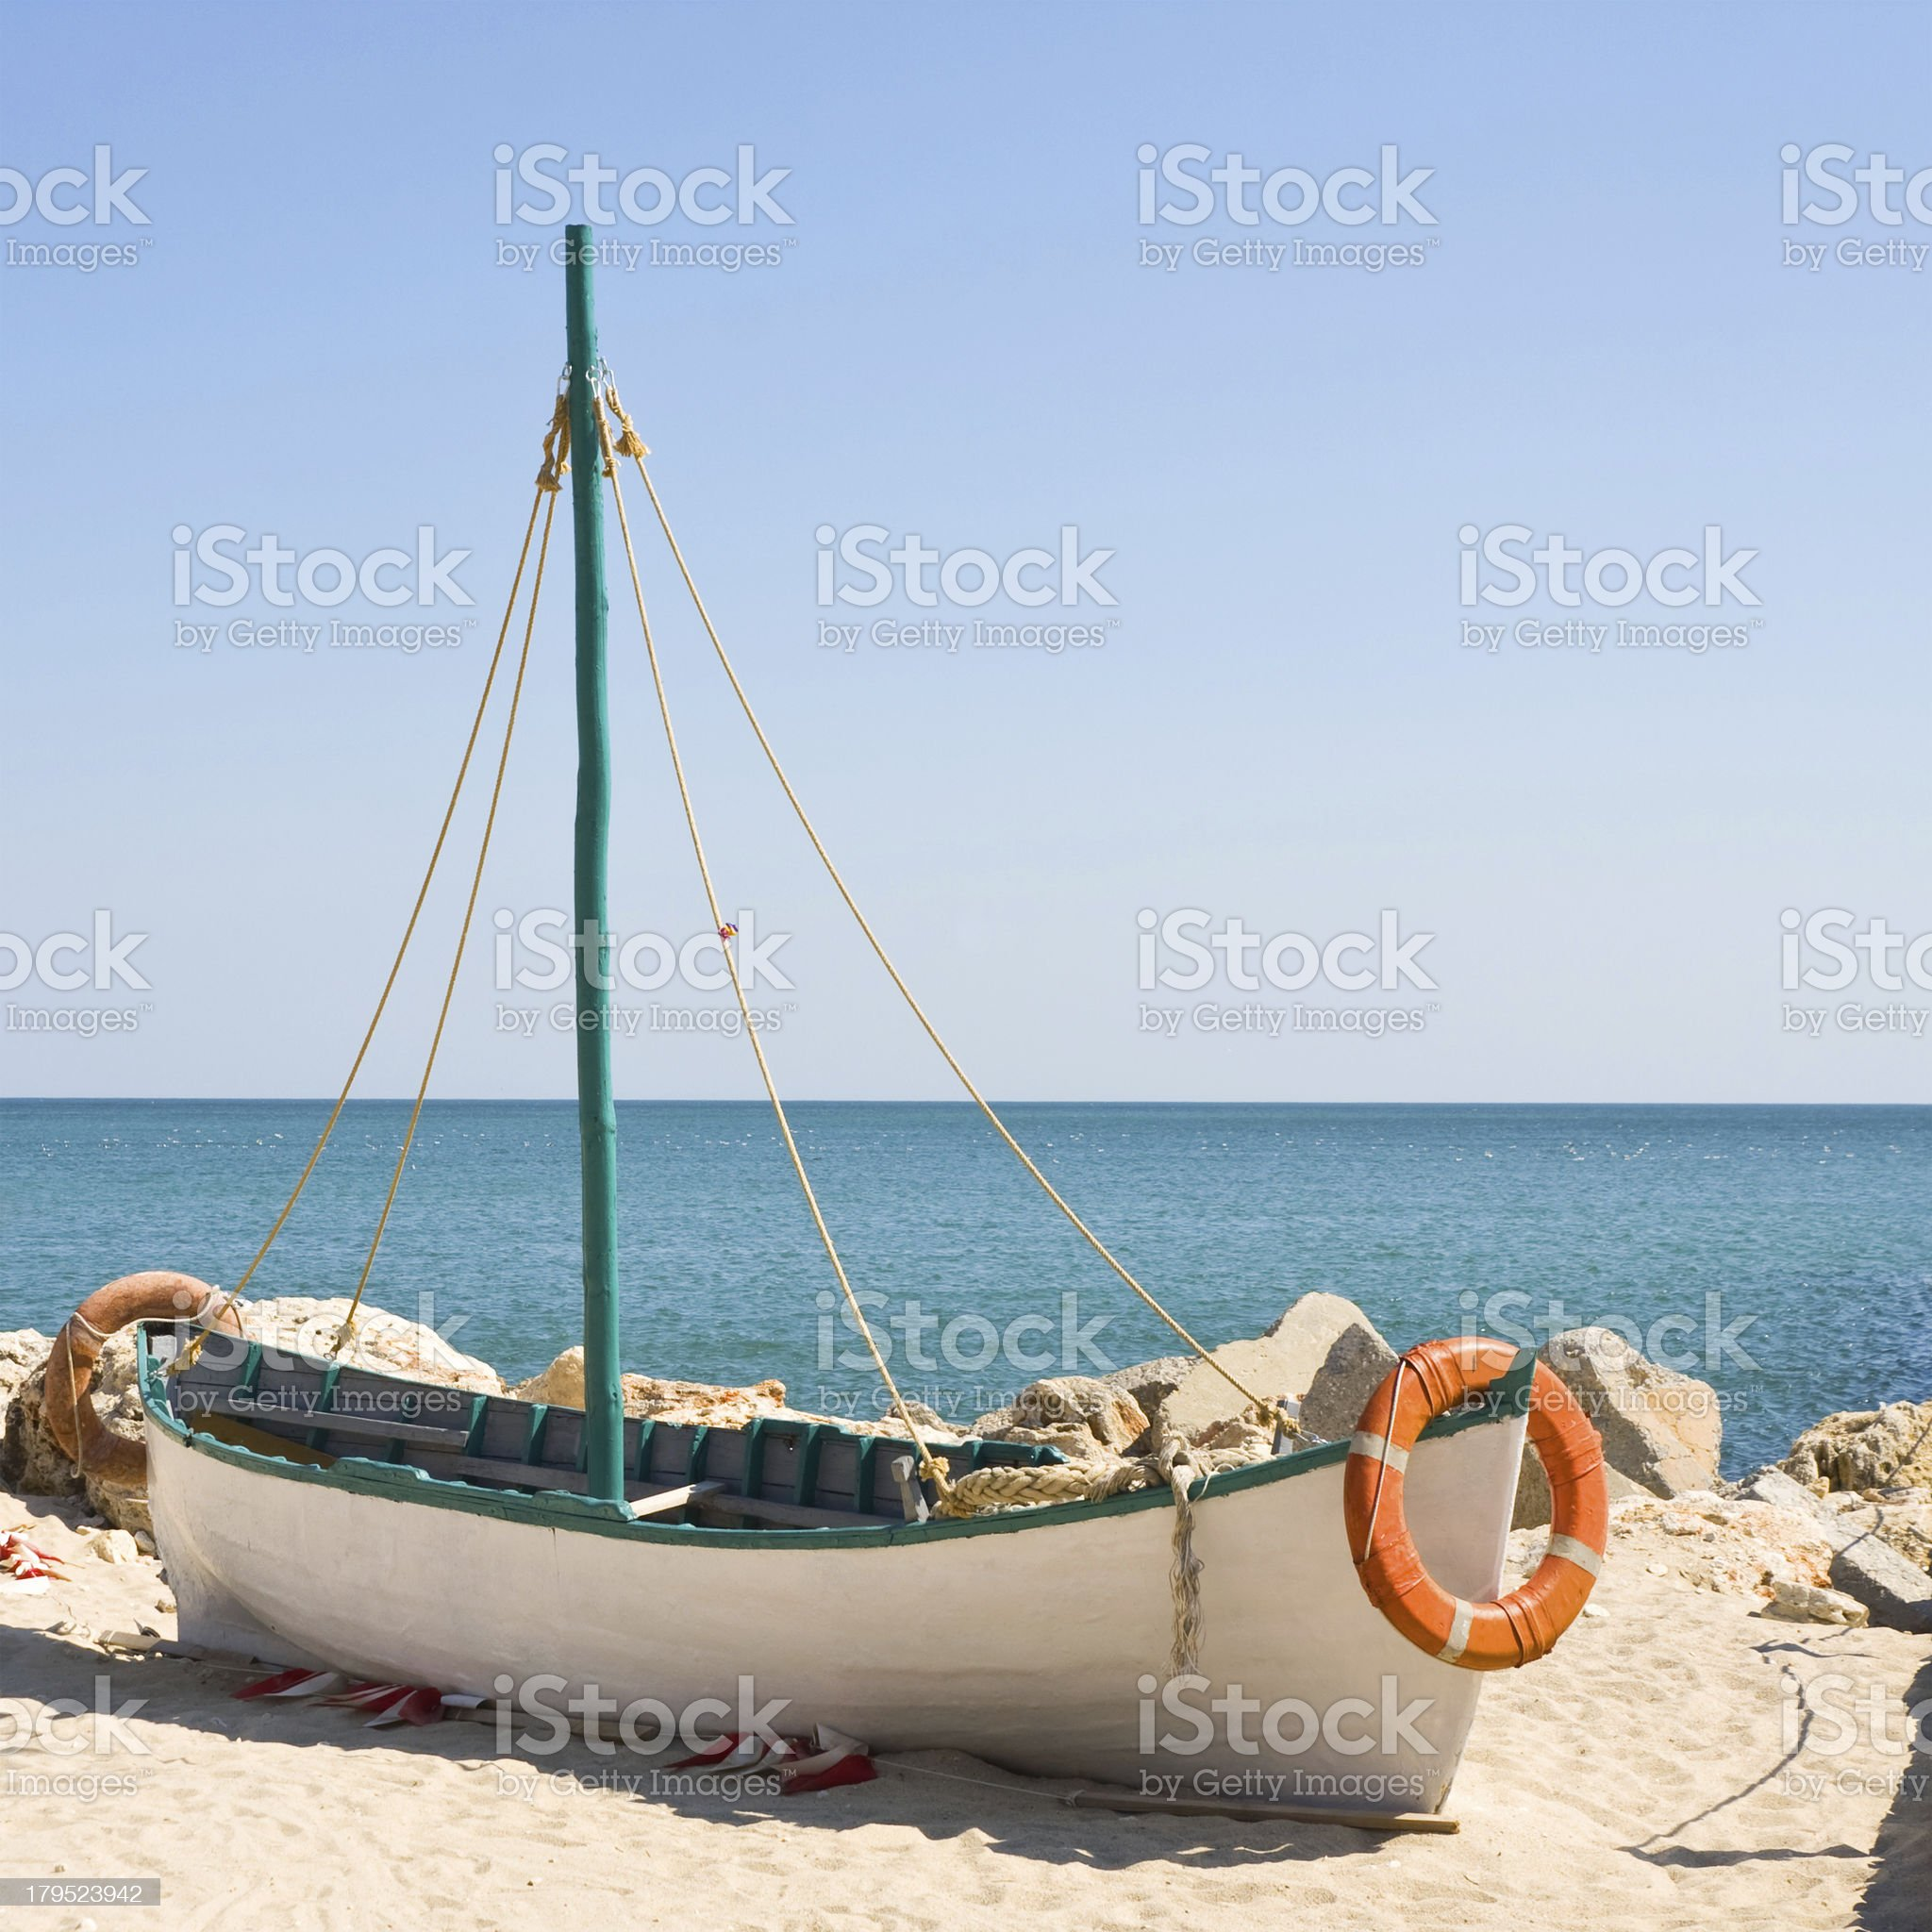 Boat on the beach at sunrise time royalty-free stock photo